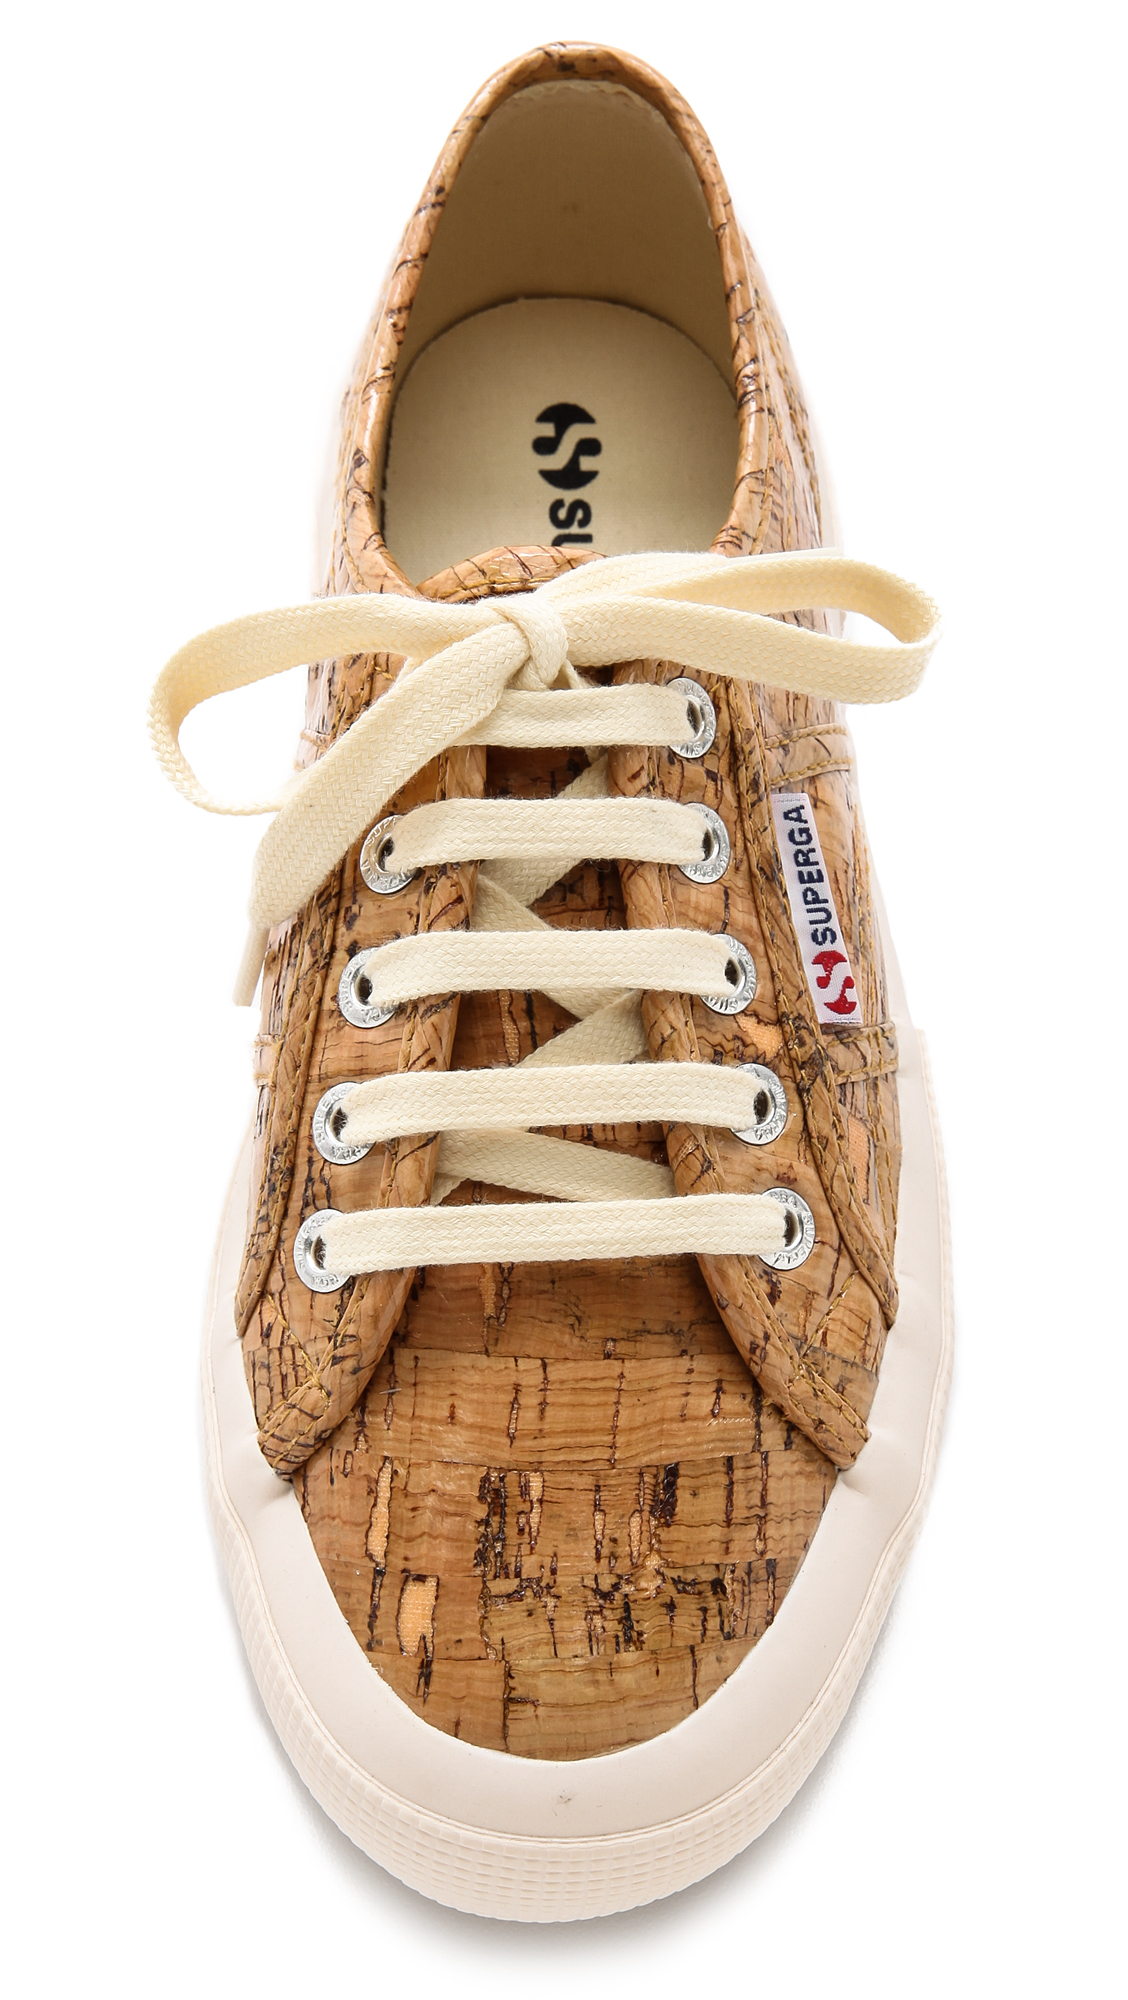 Superga Cork Sneakers Natural